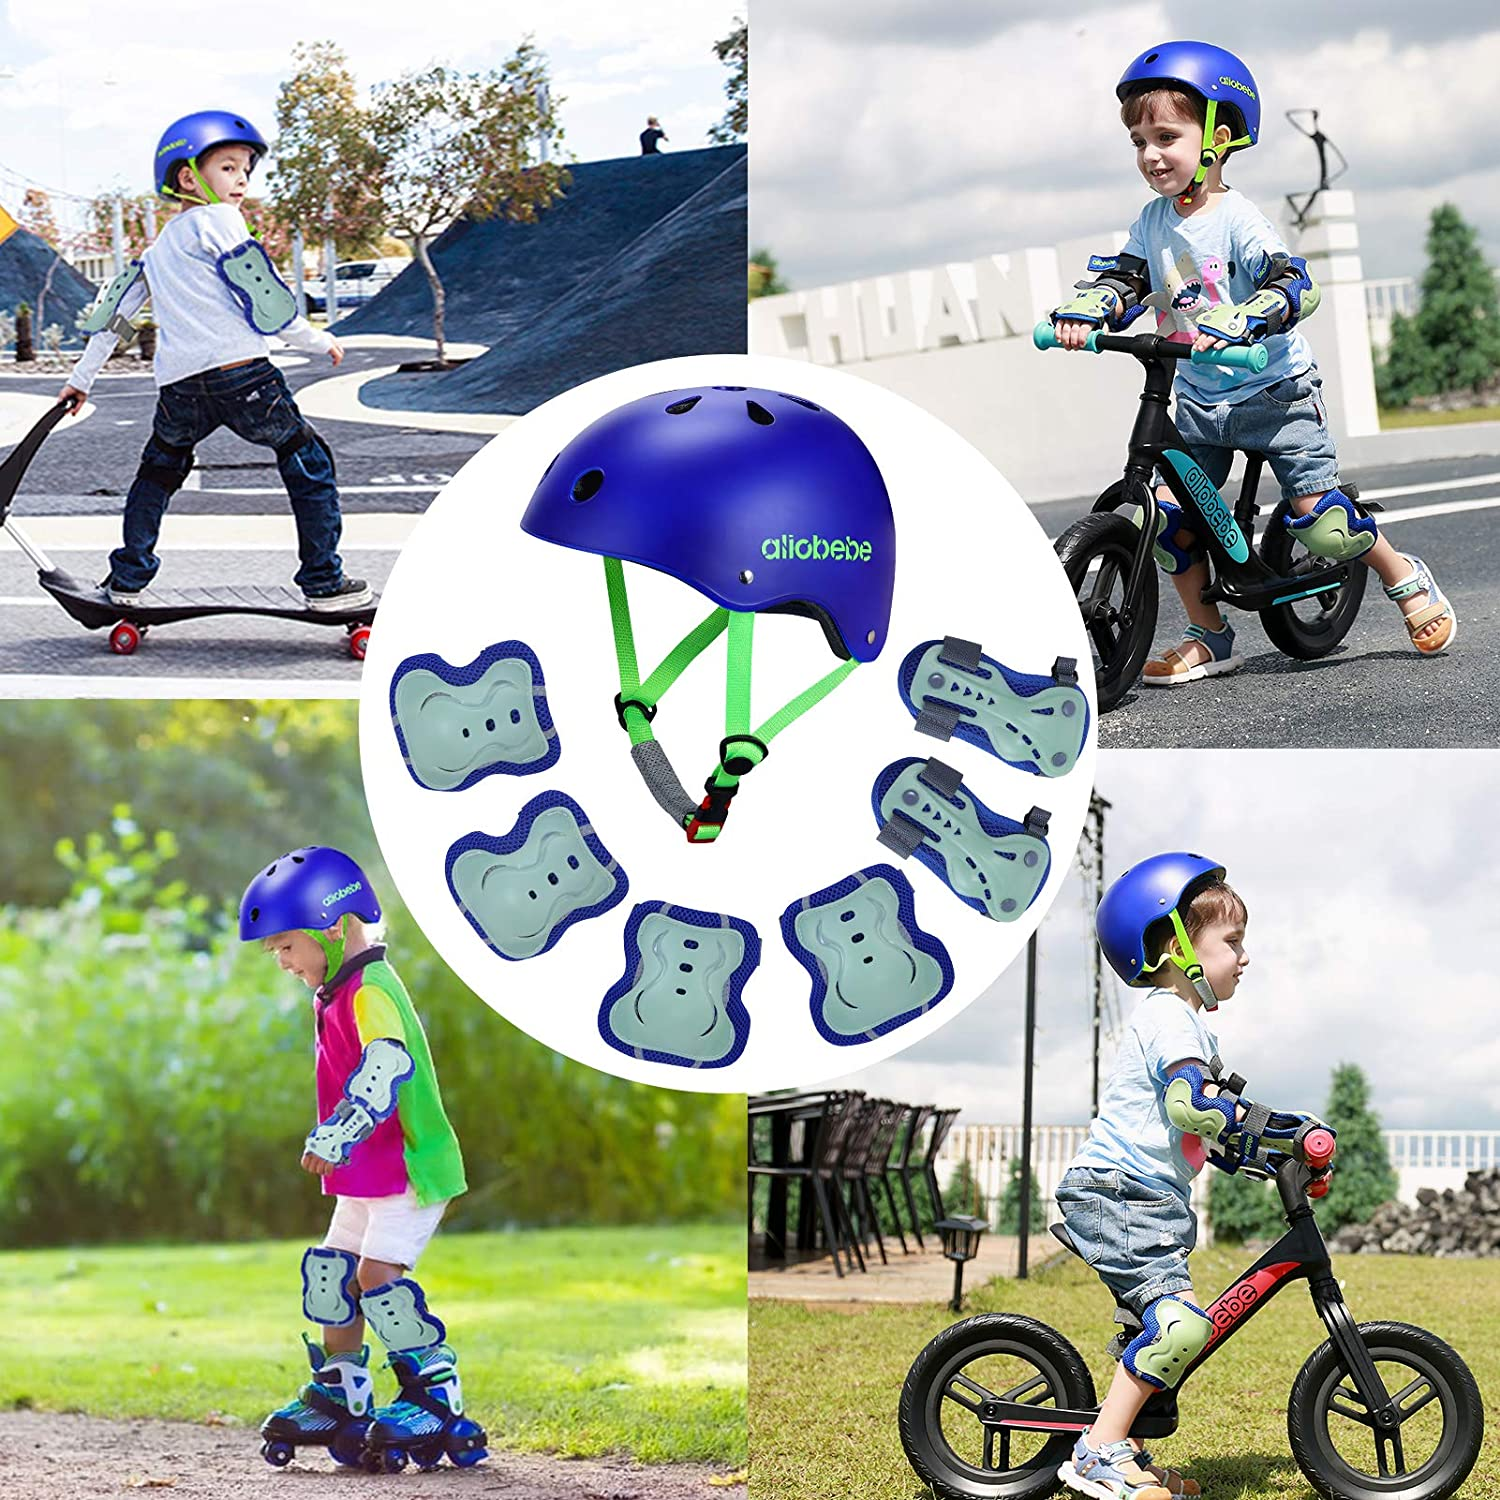 Adjustable Child Cycling Helmet Sport Protective Gear Set Knee Pads Elbow Pads Wrist Guards for 3-10 Years allobebe Kids Bike Helmet Toddler Helmet Cycling Skating Scooter Helmet and Pads